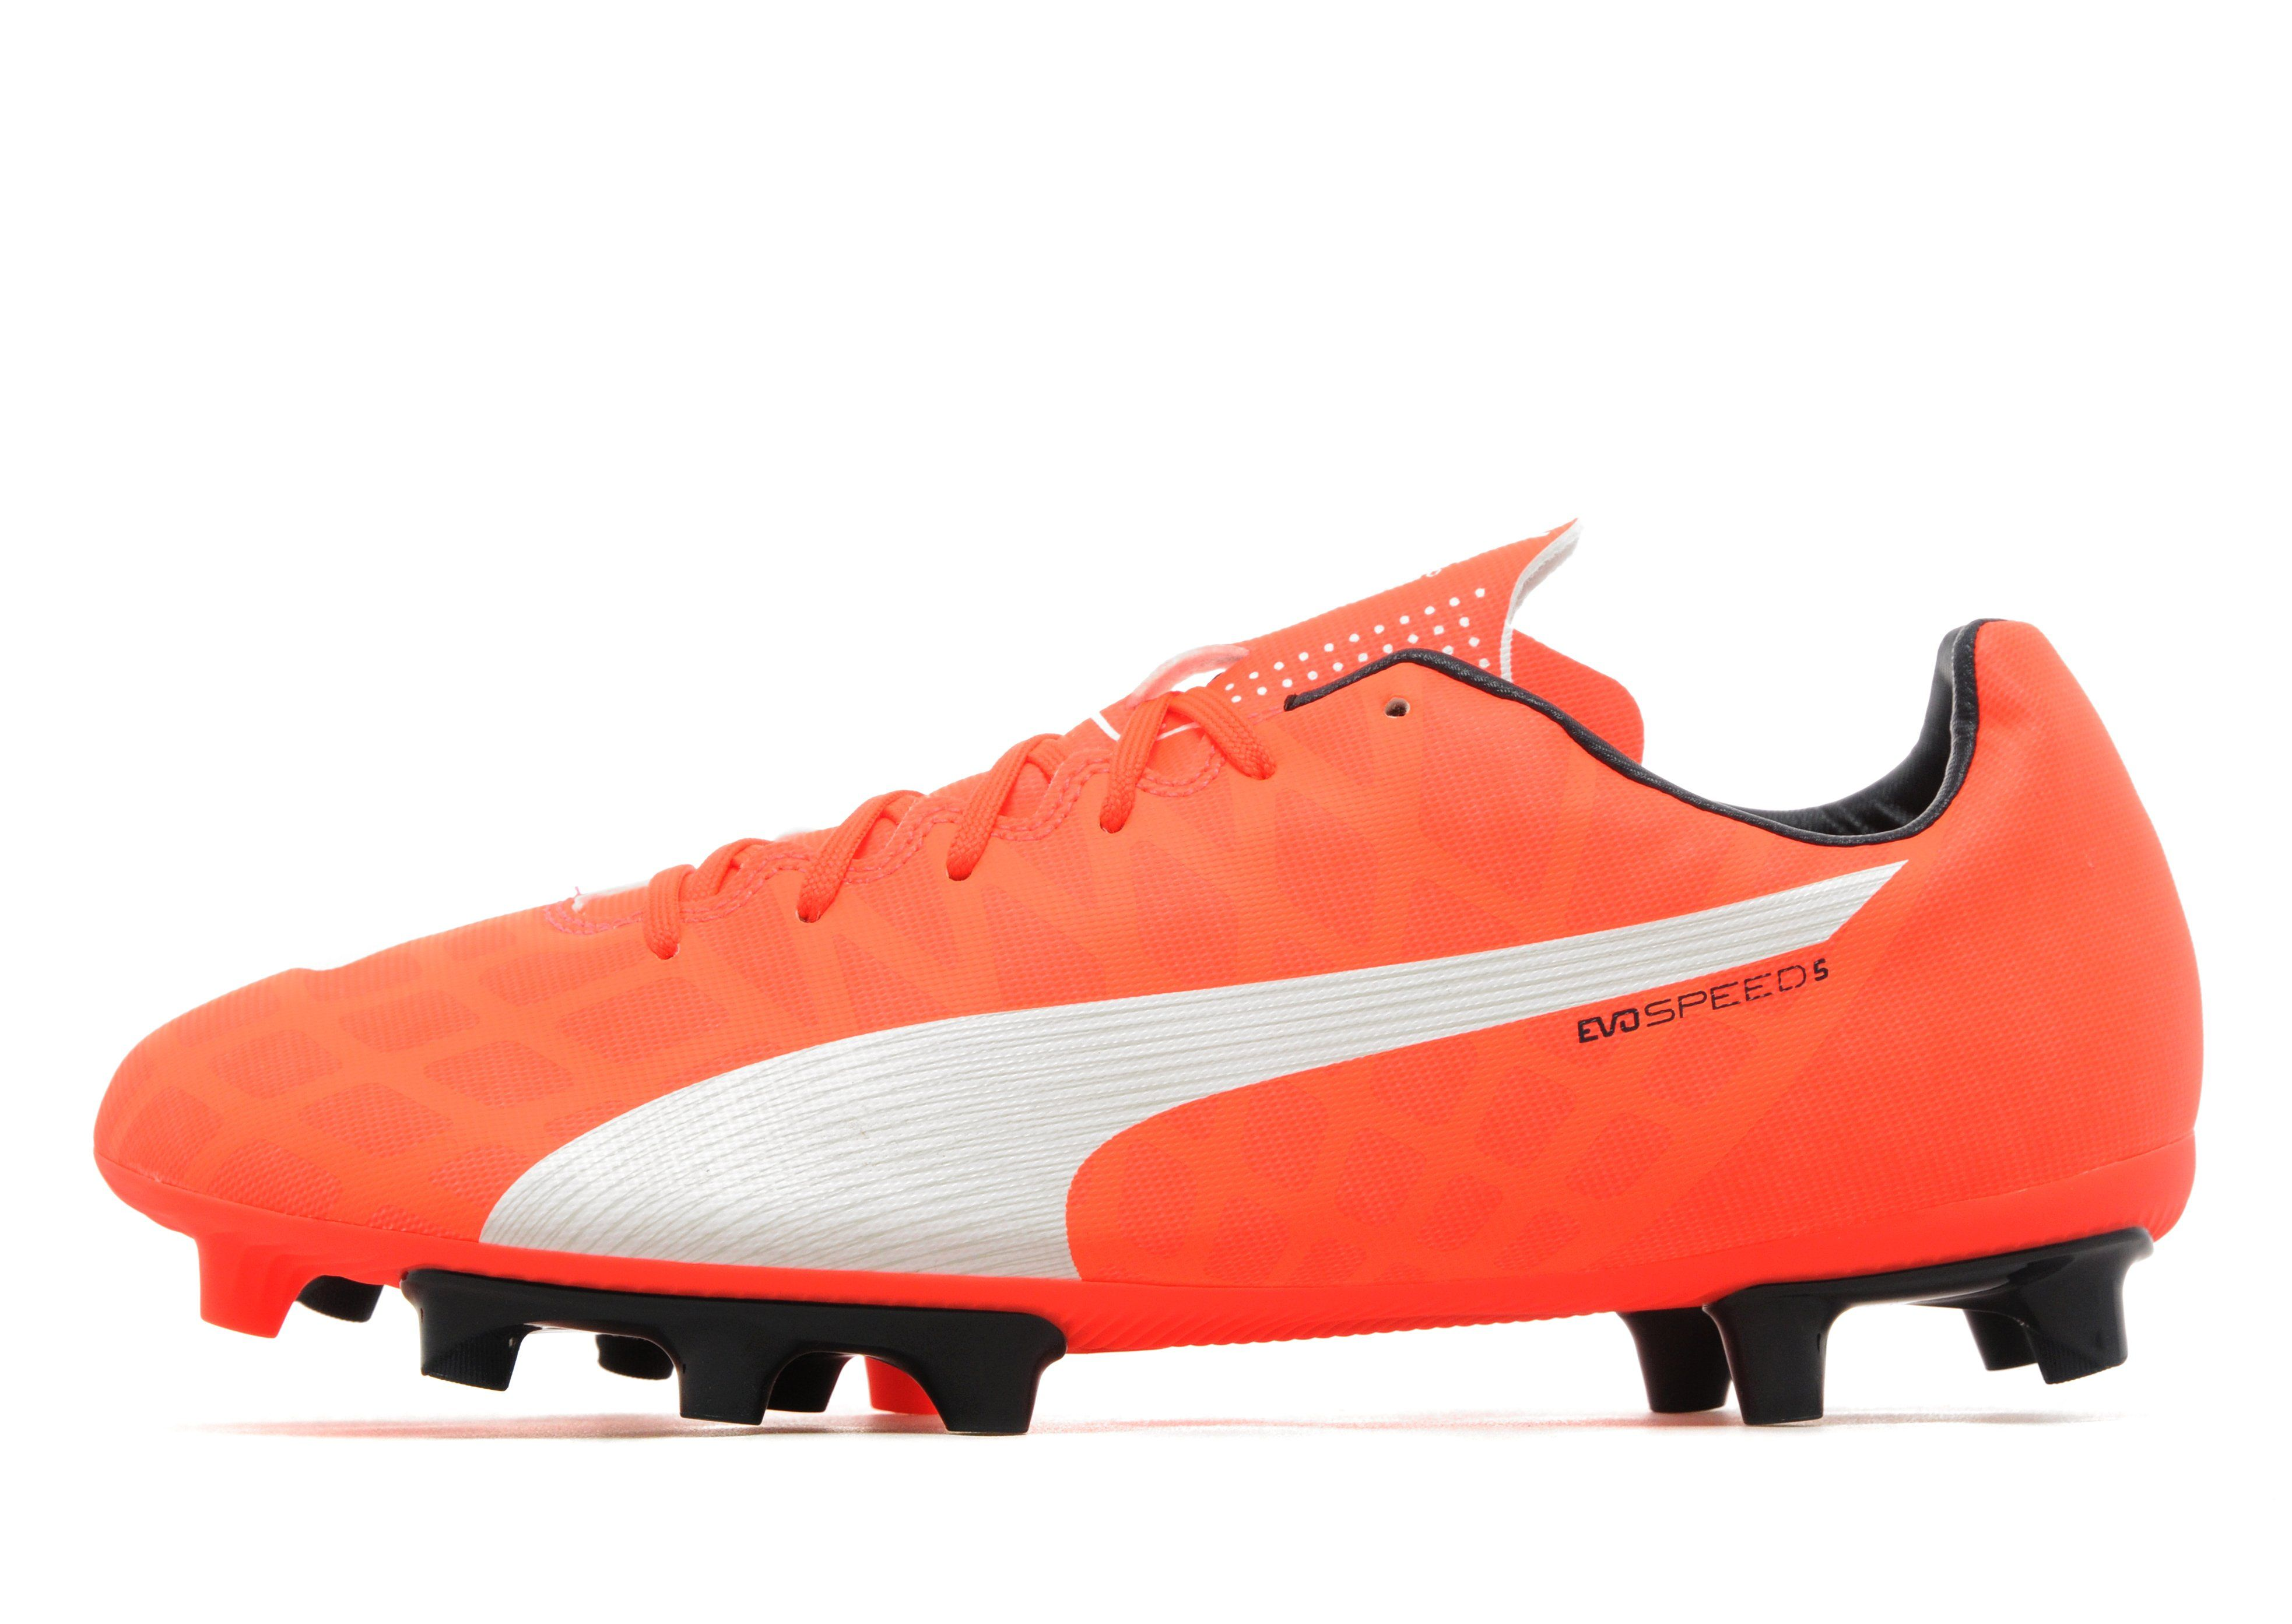 PUMA EvoSPEED 5.4 Firm Ground